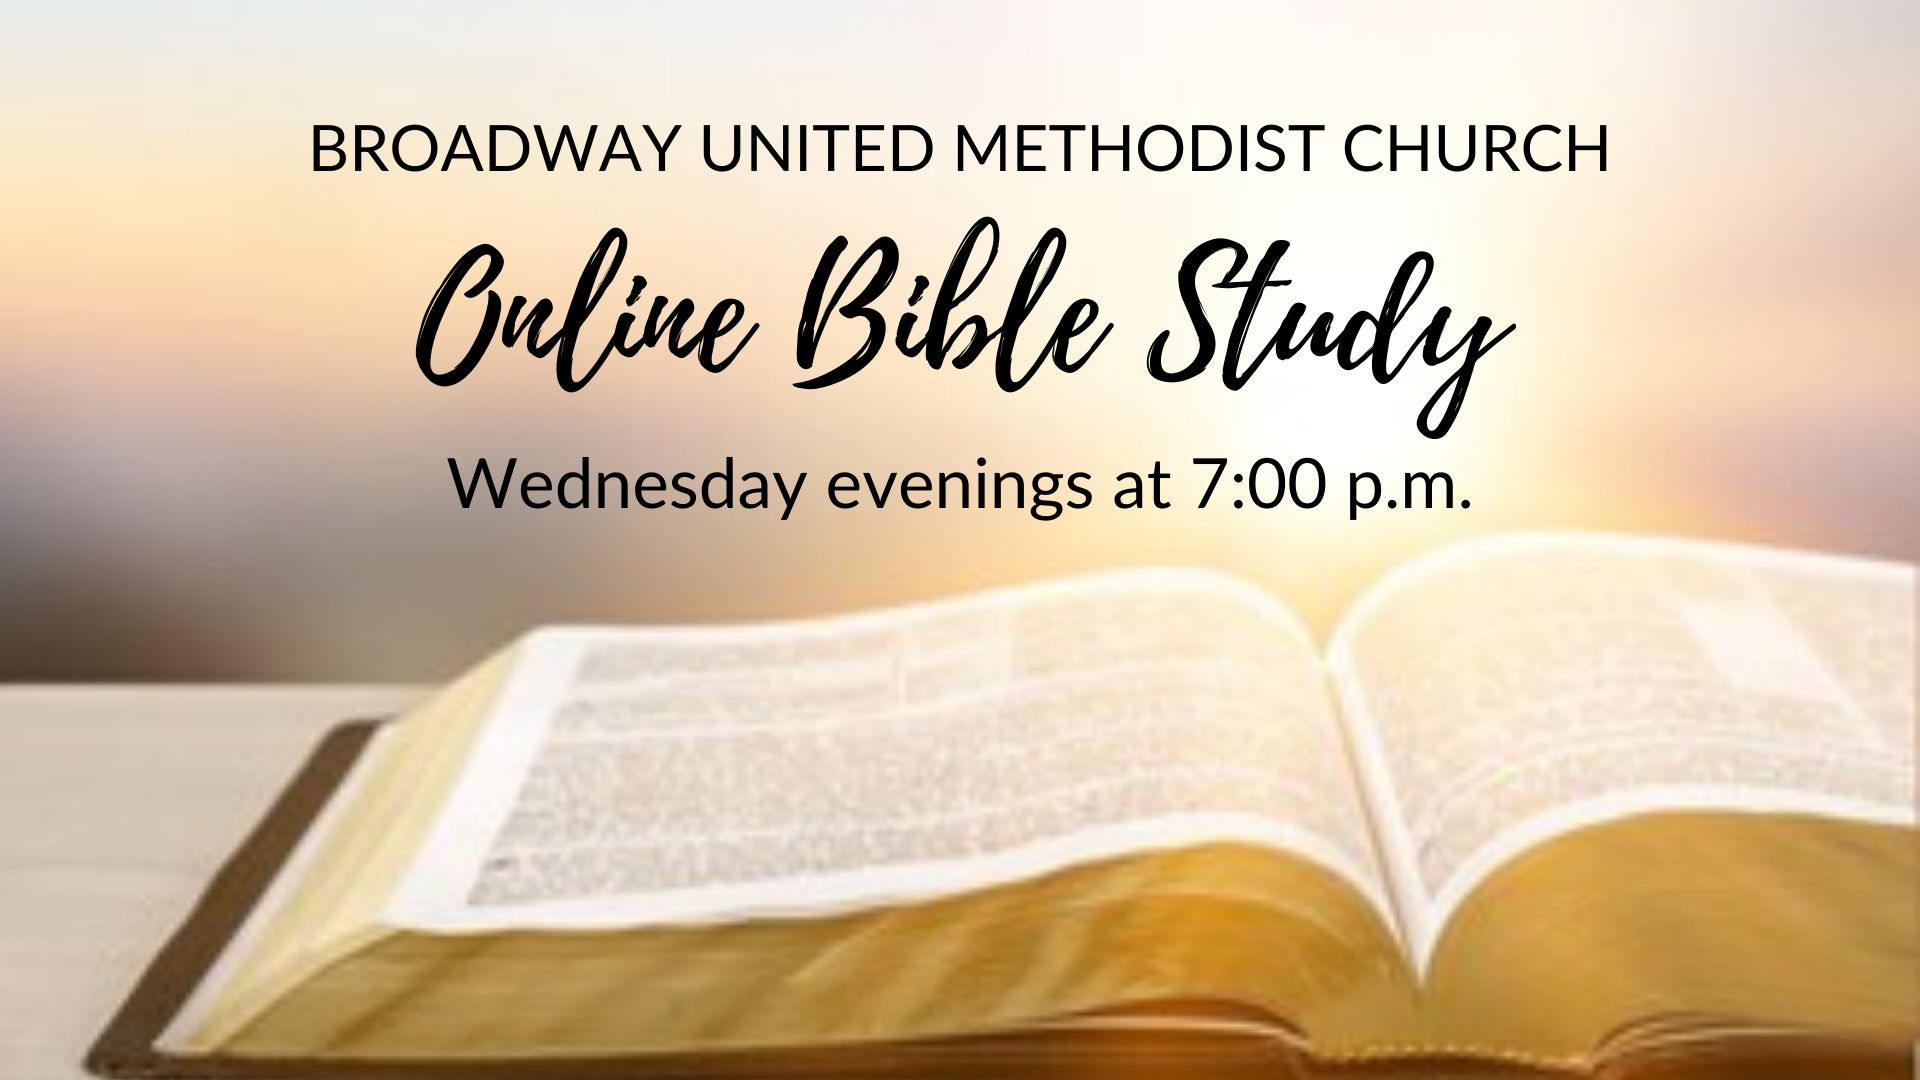 United Methodist Church 2021 Lectionary Events Broadway United Methodist Church With United